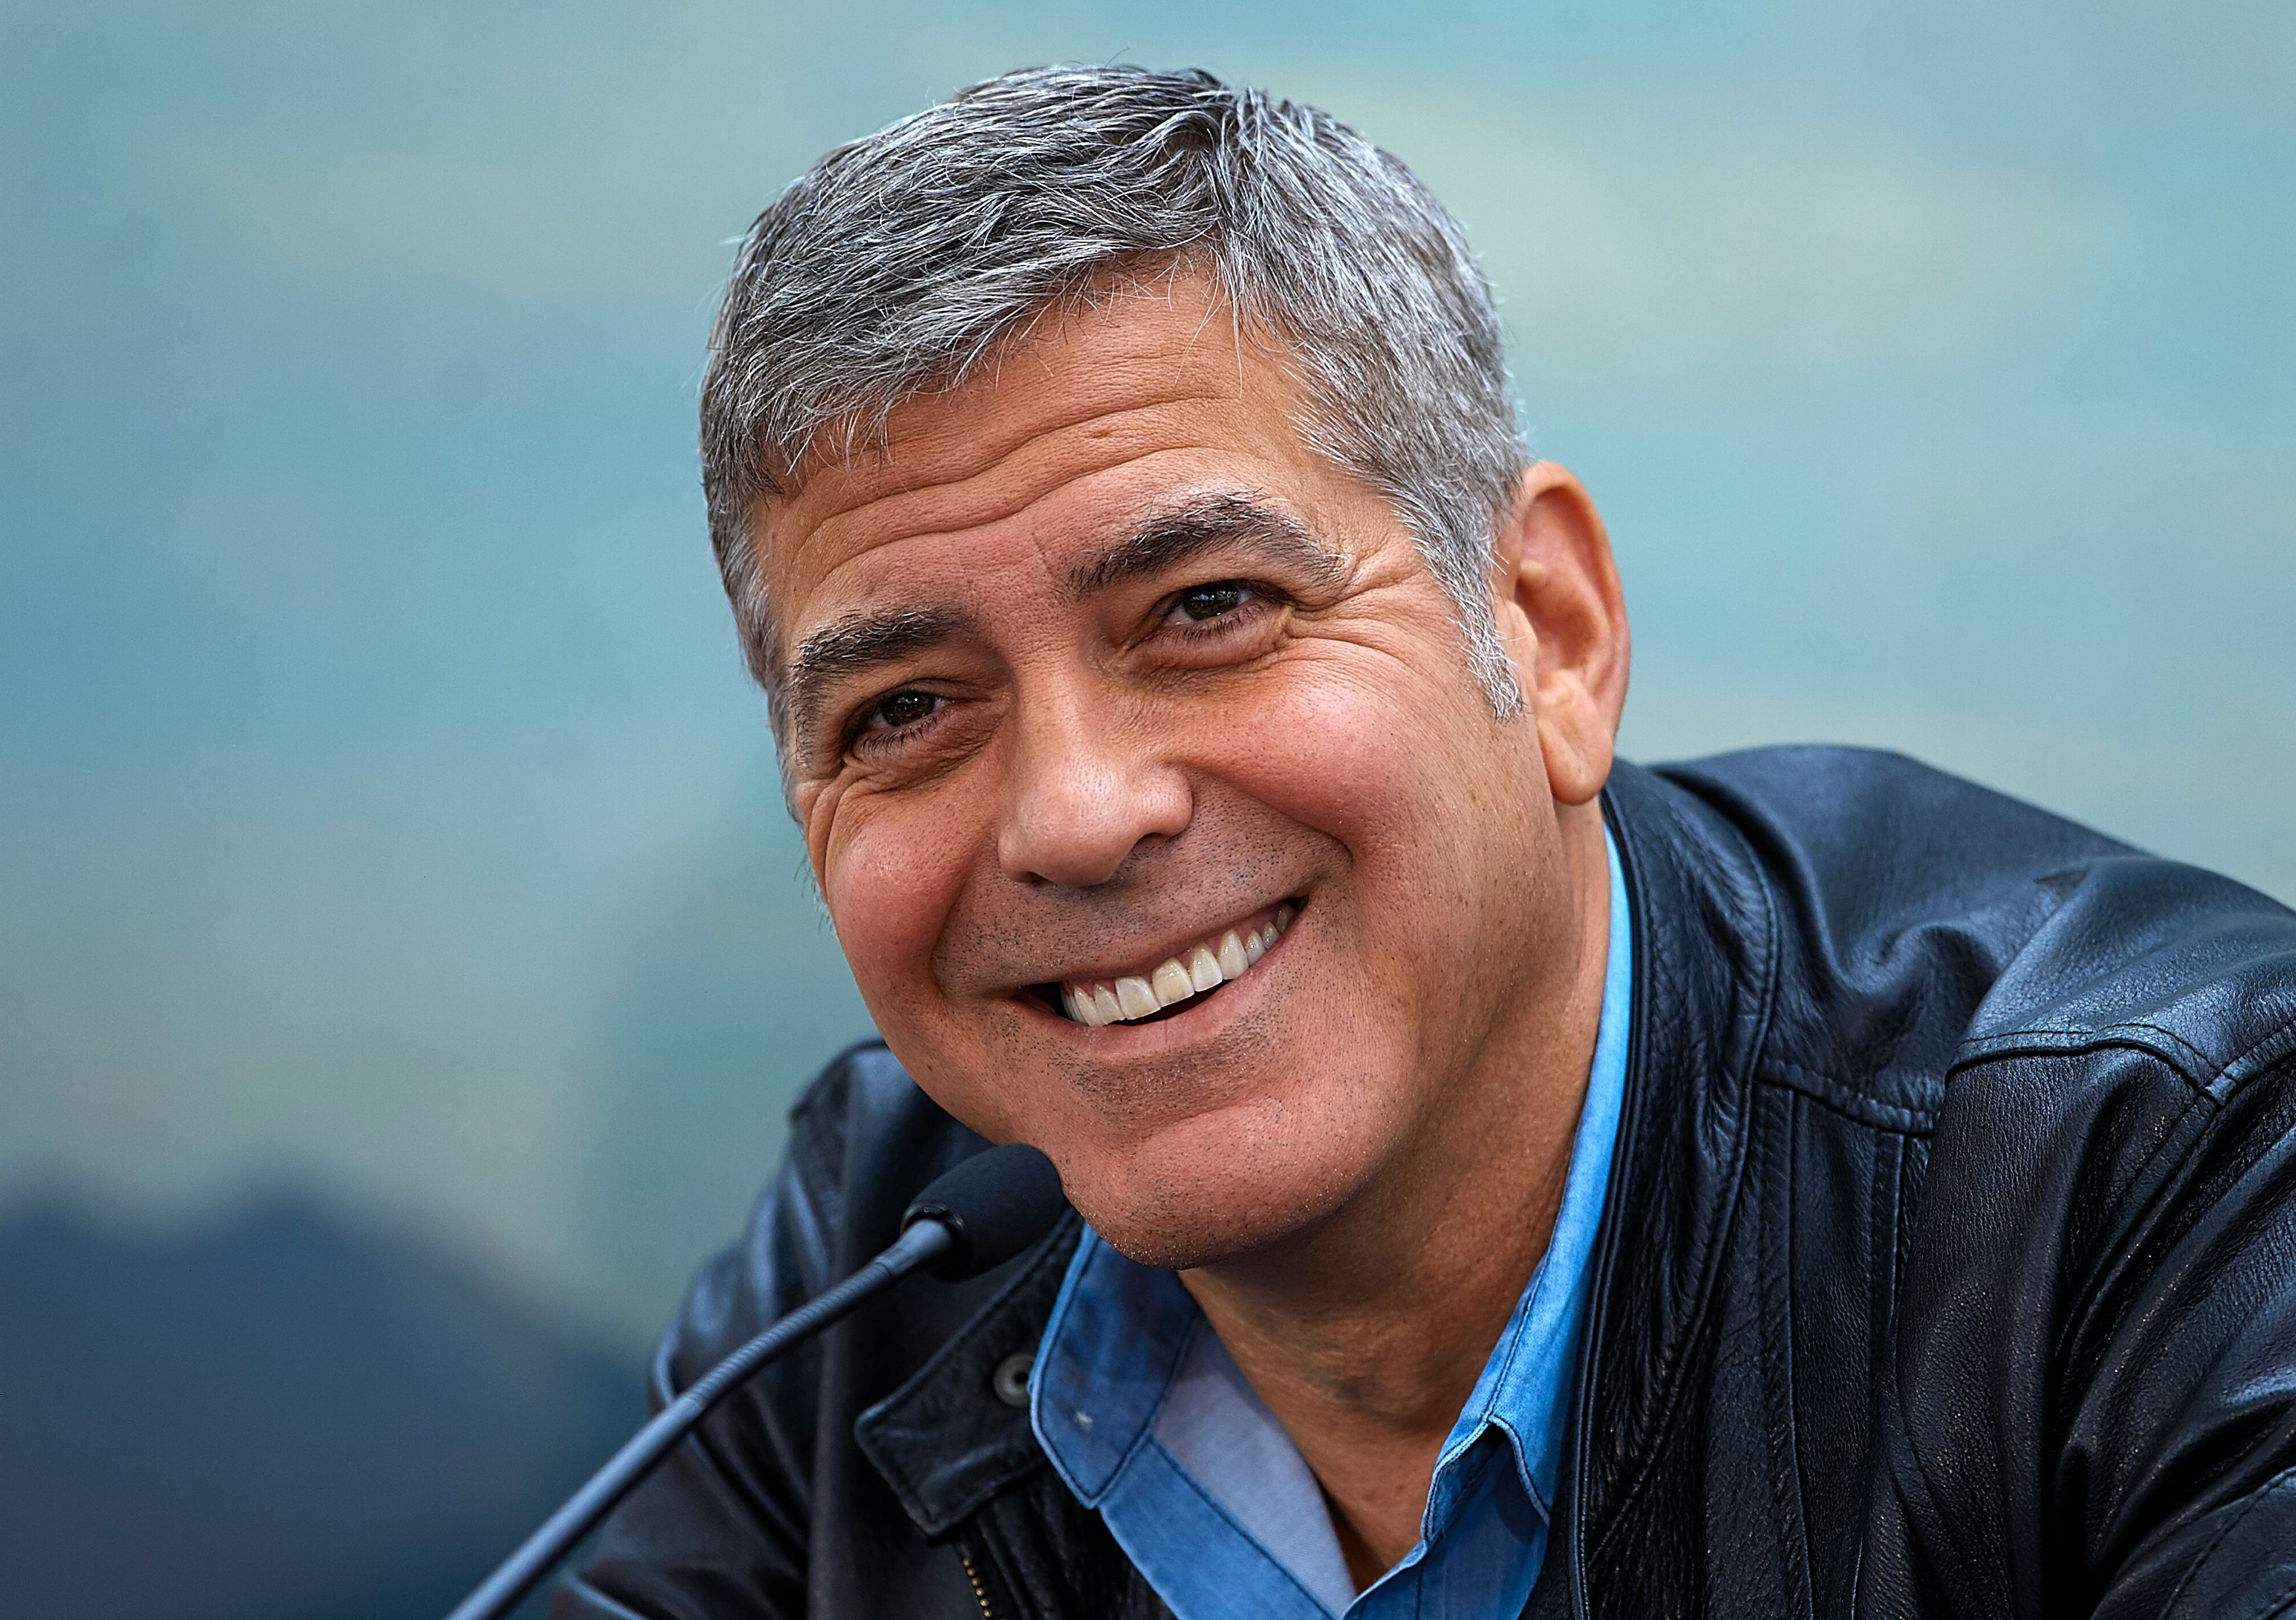 George Clooney at at the 'Tomorrowland' Press Conference at the L'Hemisferic on May 19, 2015 | Photo: Getty Images